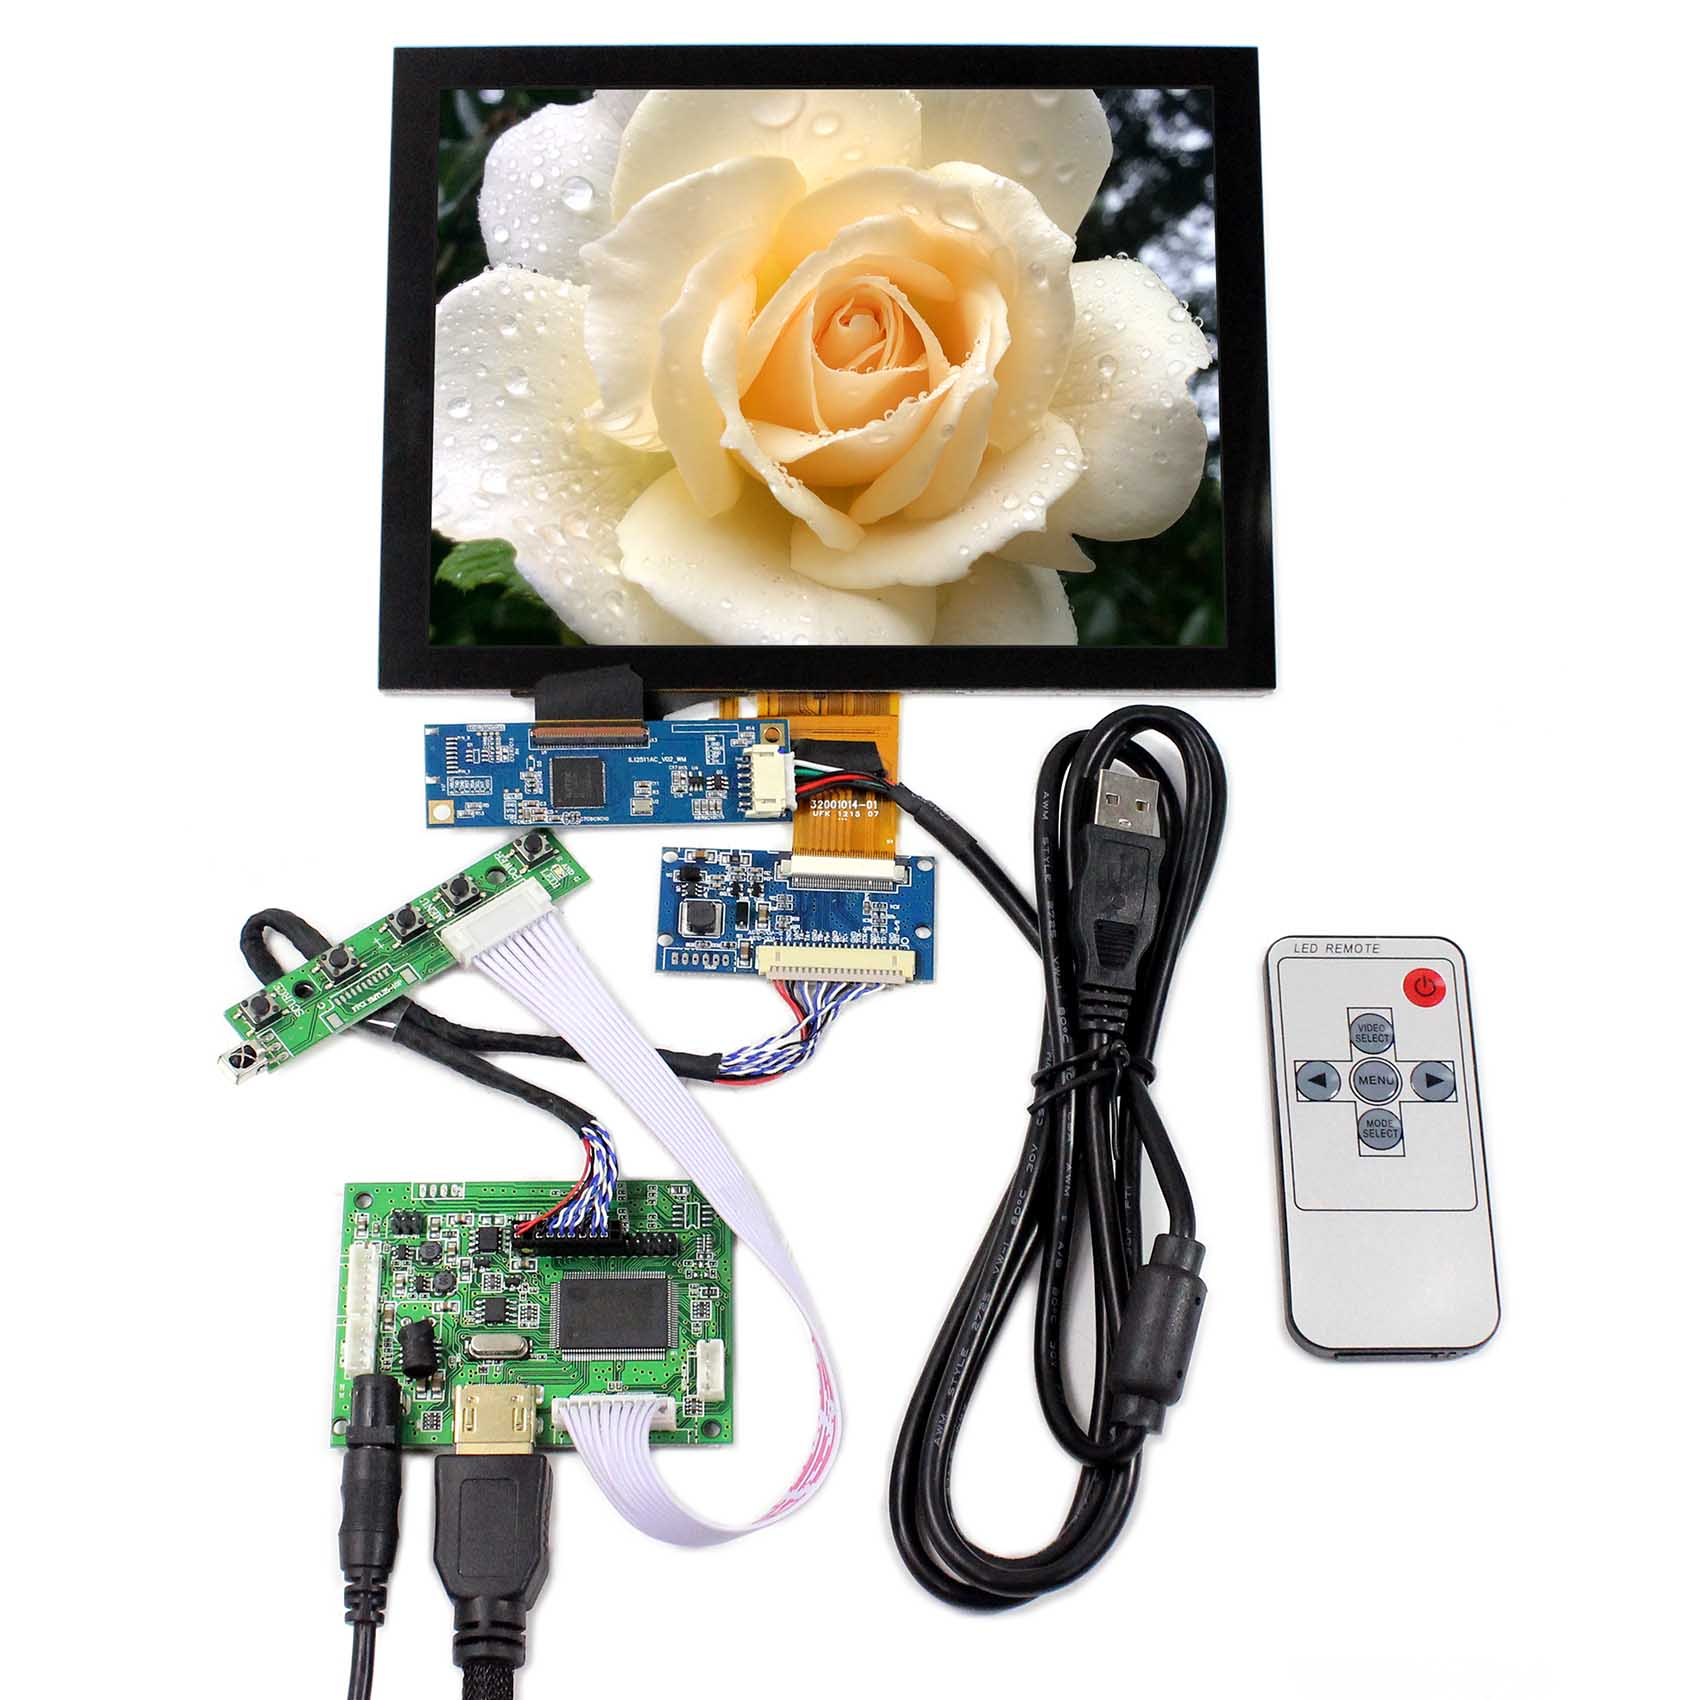 8inch LCD Display 1024x768 Resolution HDMI LCD Controller Board Capacitive Touch Panel цена 2017